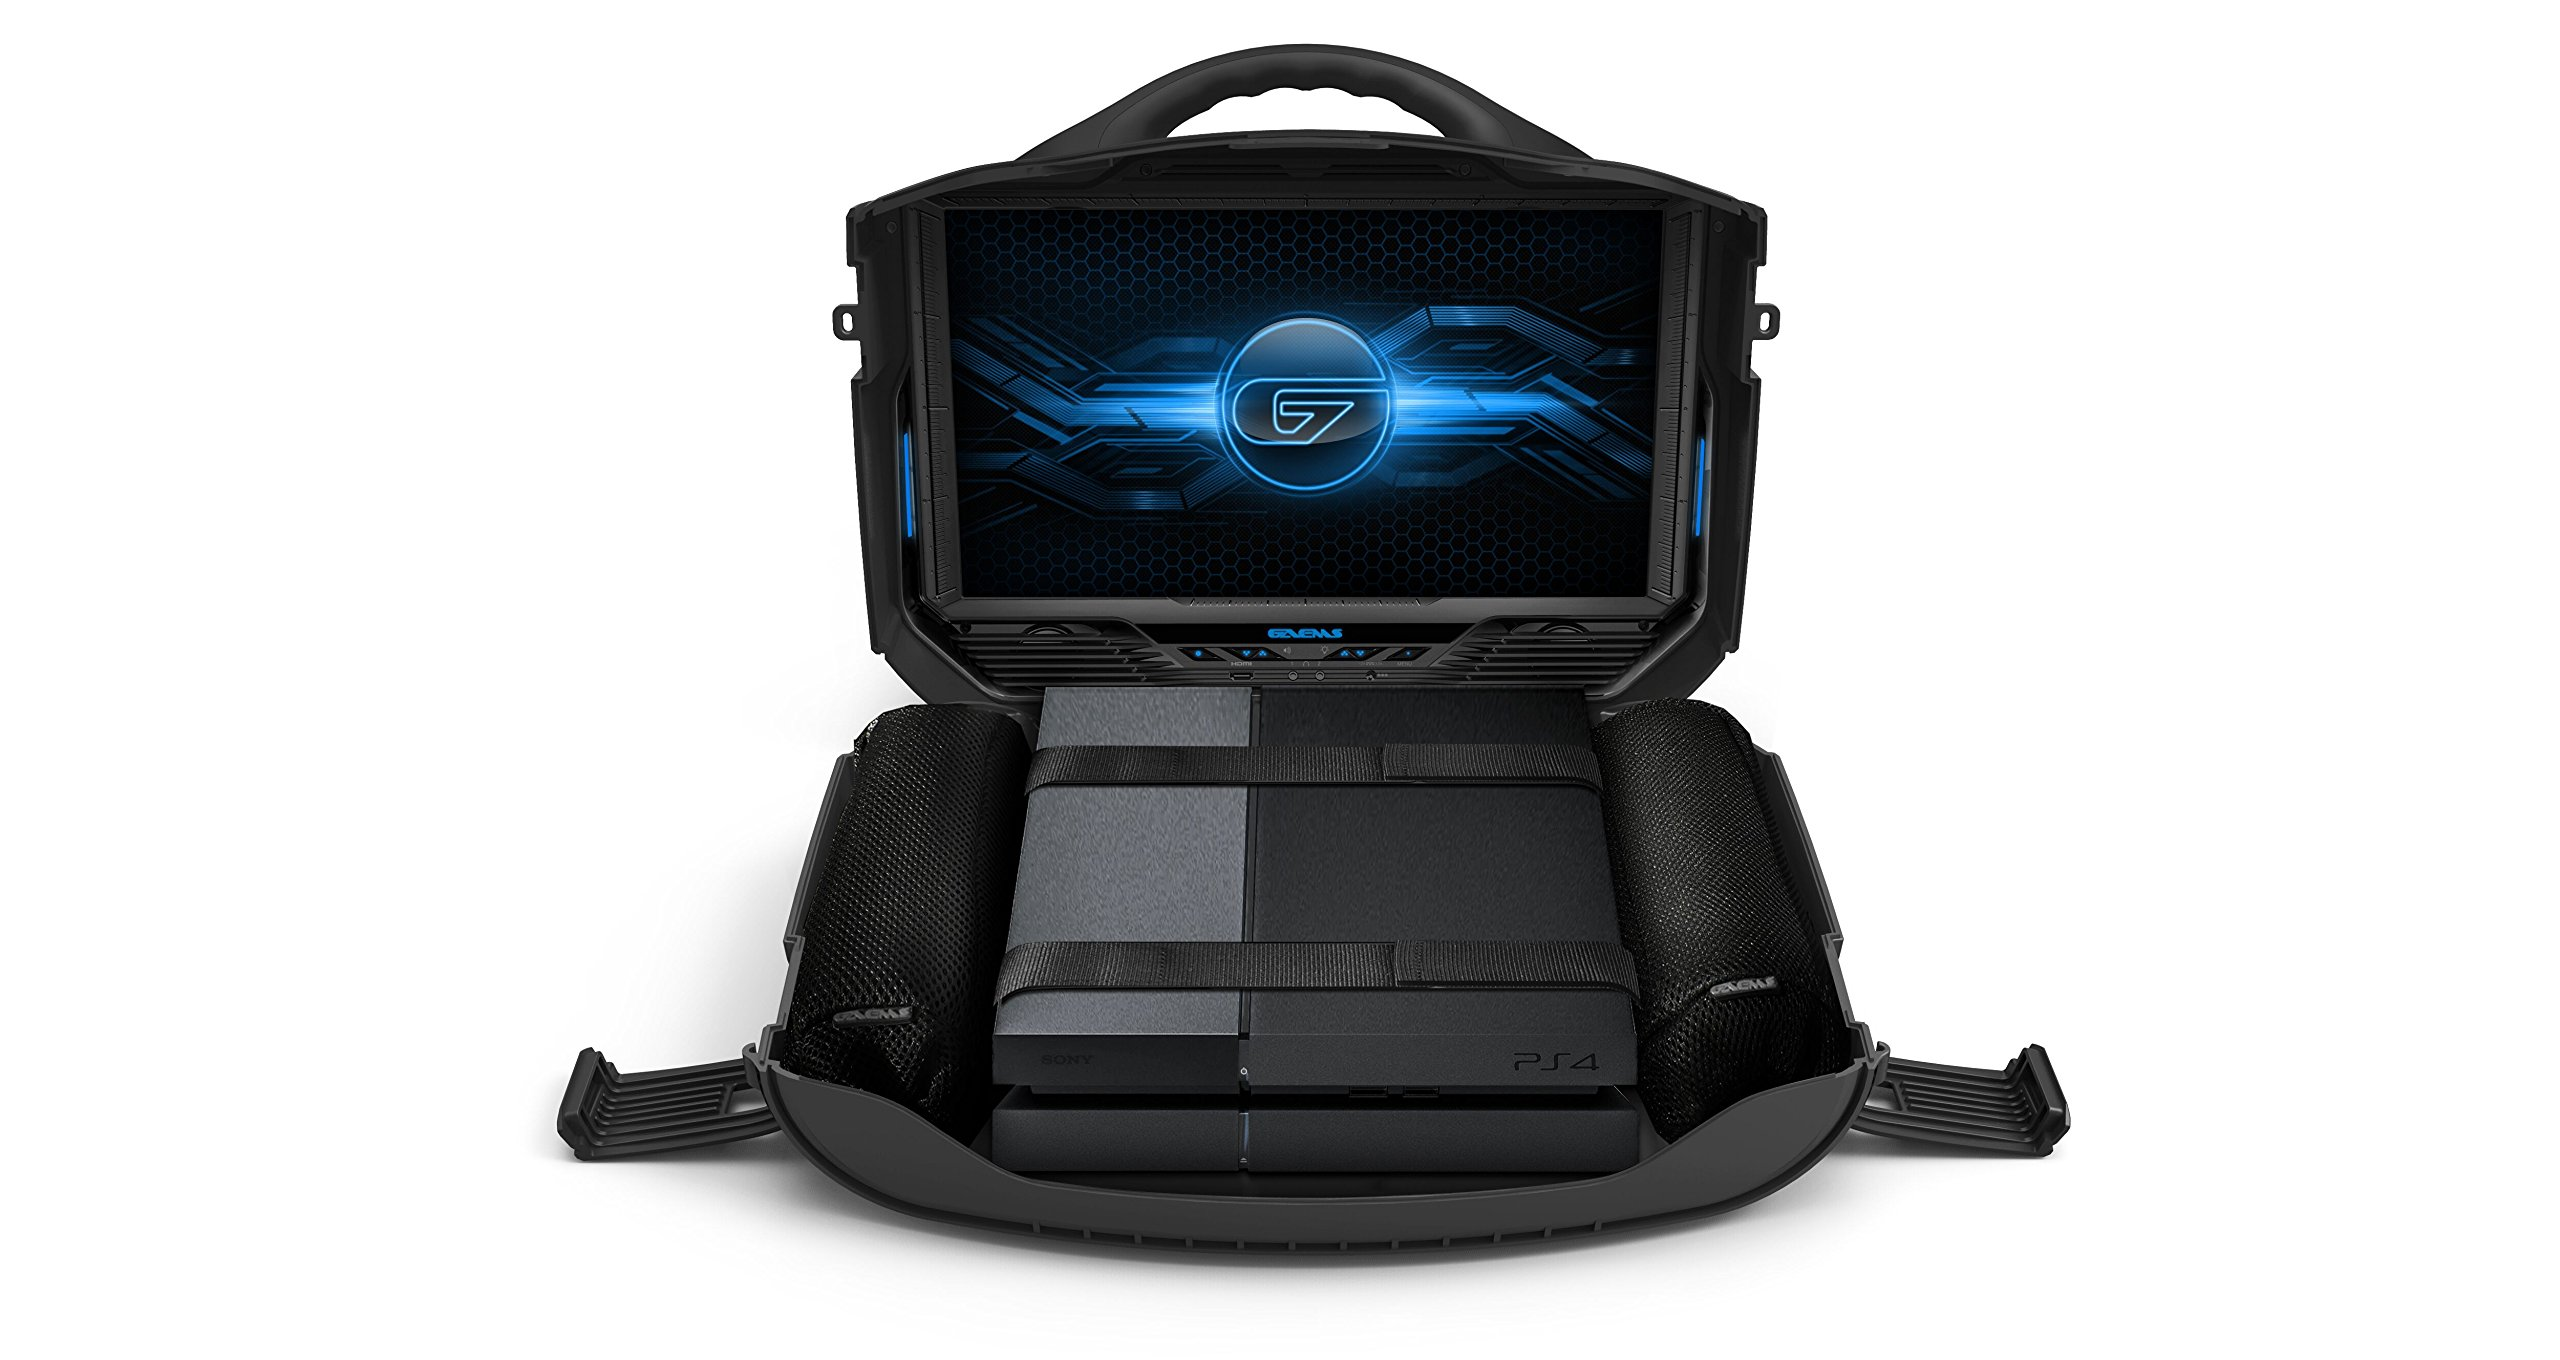 GAEMS Personal Gaming Environment for PS4 PS3 Xbox 360 One ...